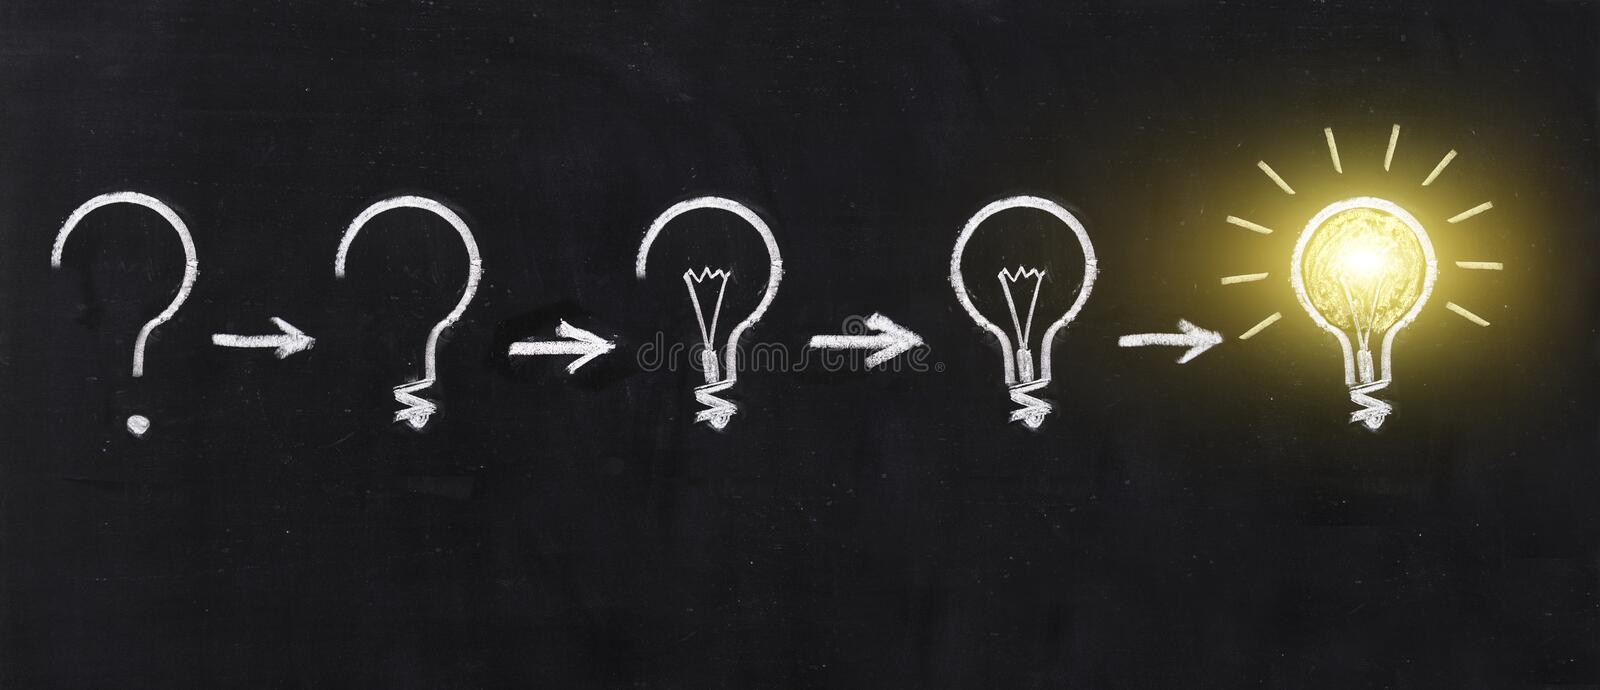 Black and white light bulb using doodle art on chalkboard background stock photography